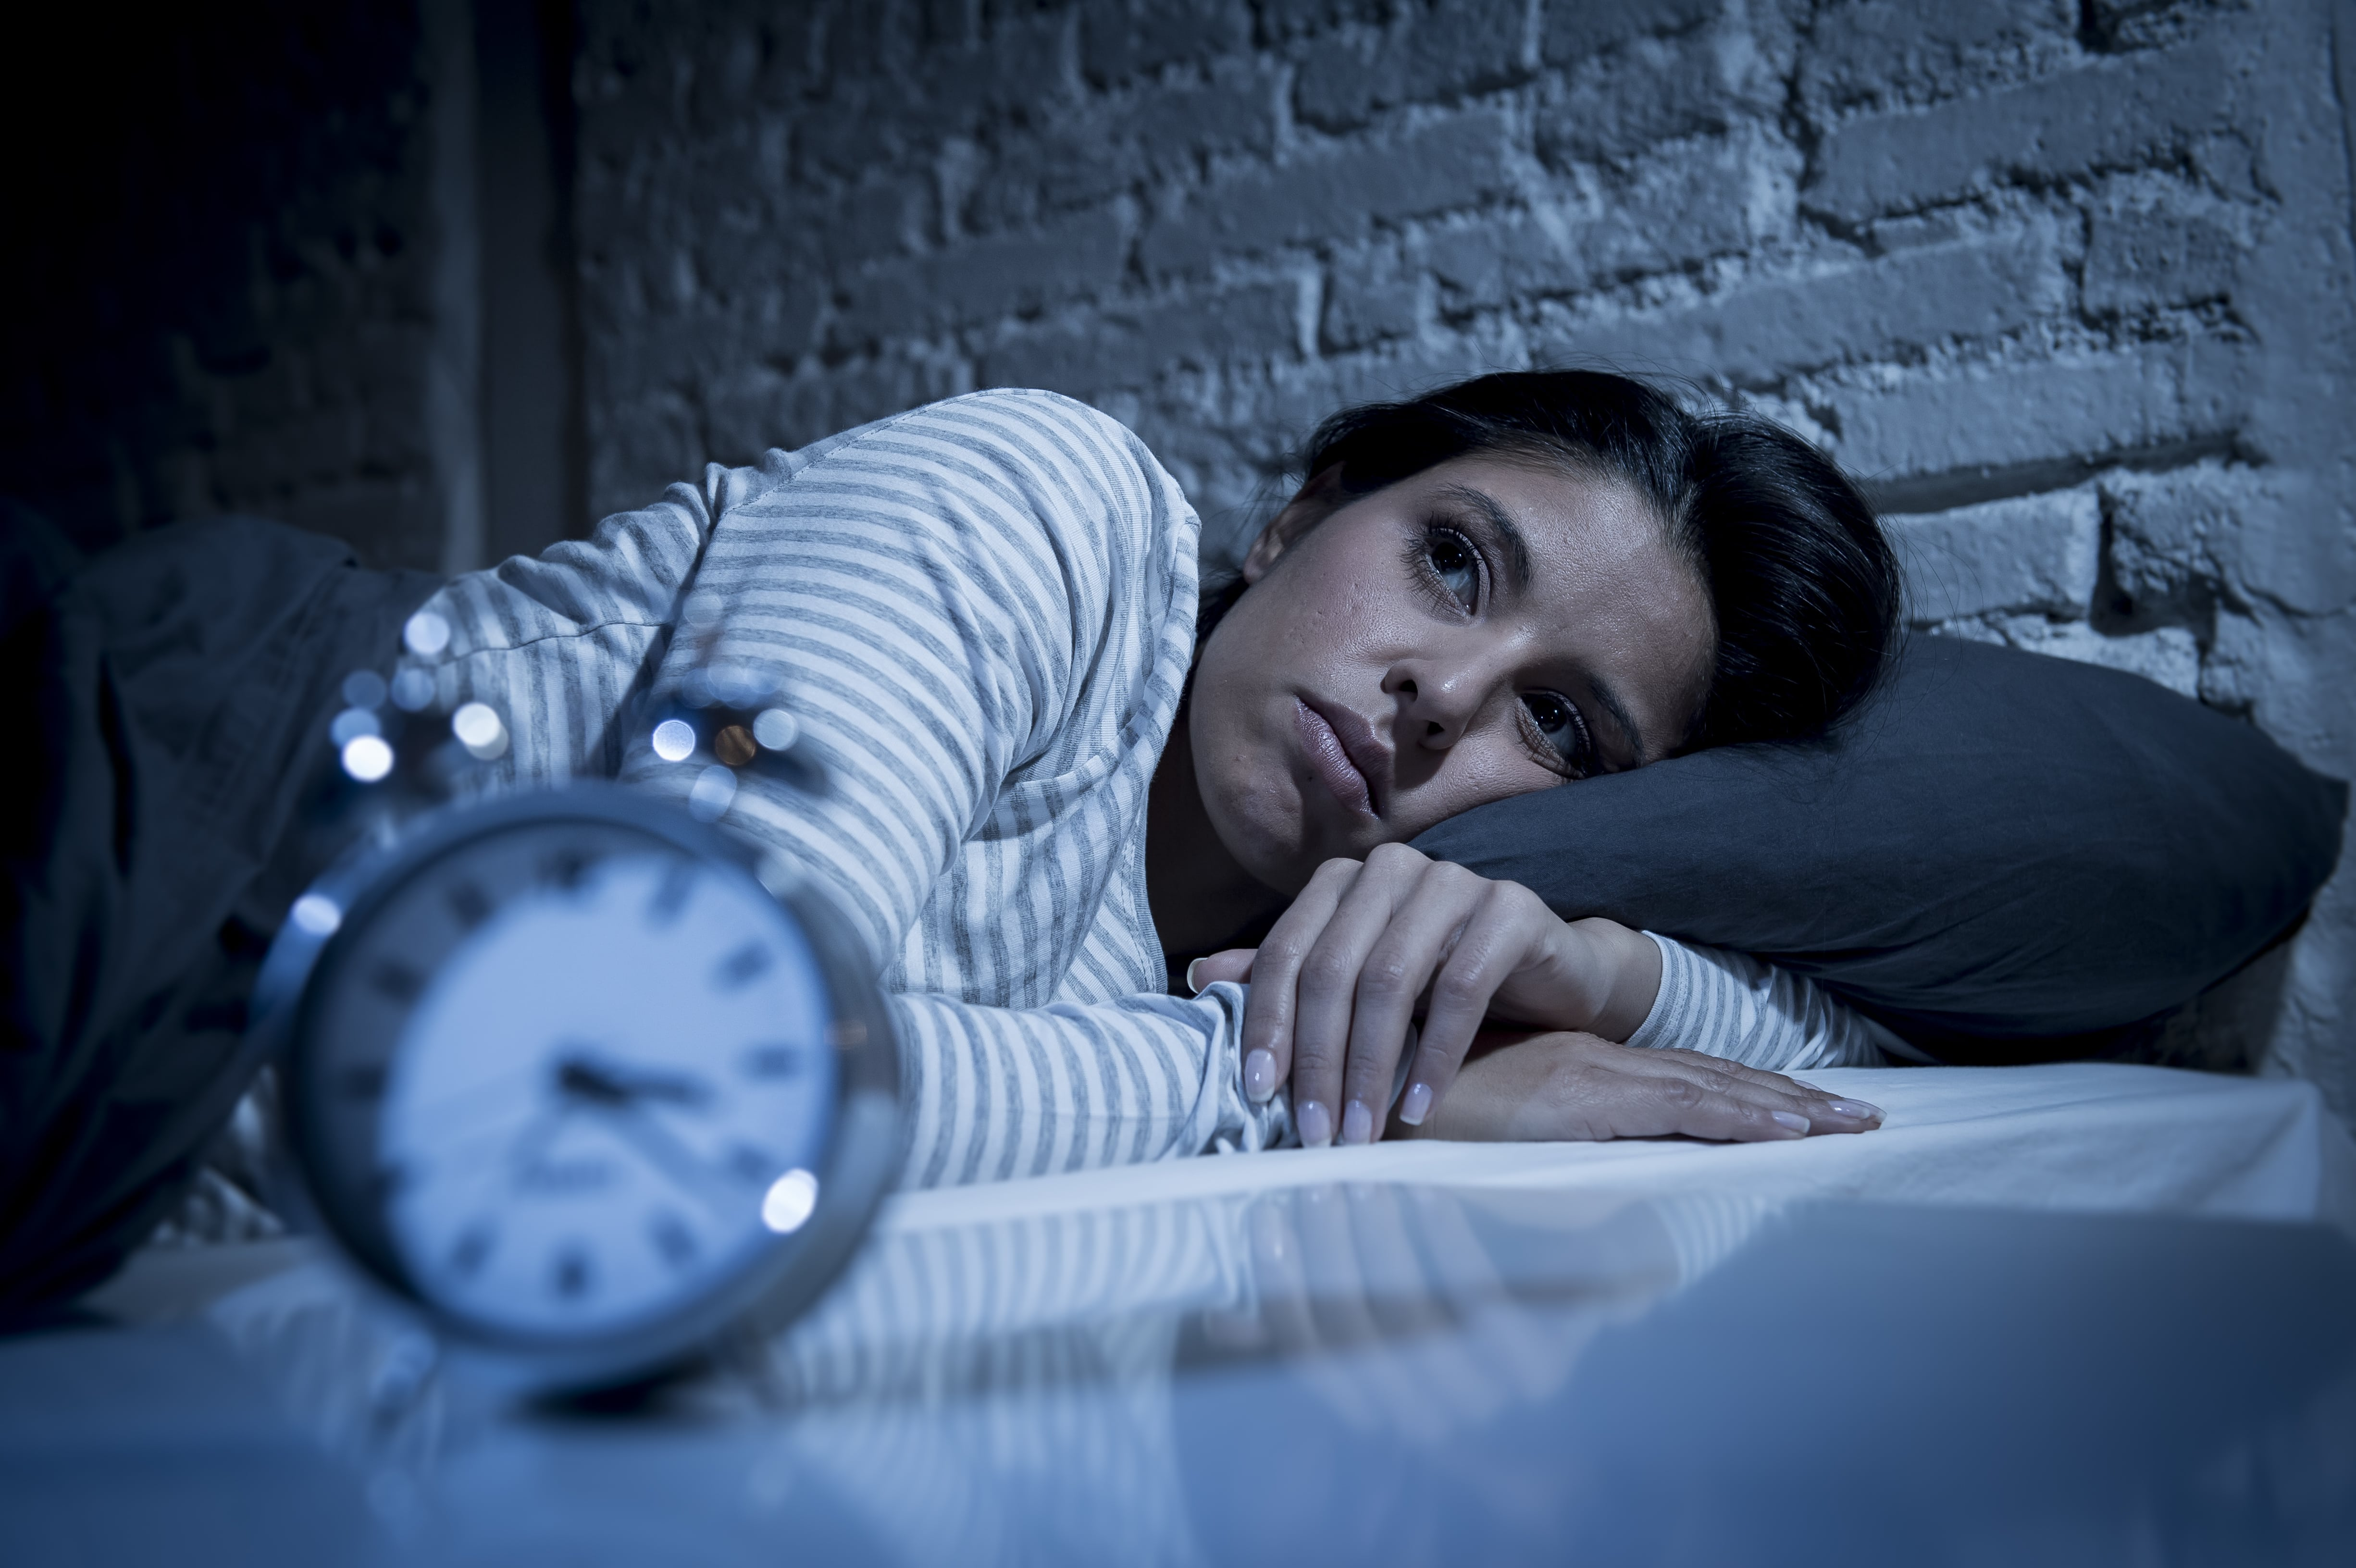 Woman with insomnia lying awake in bed